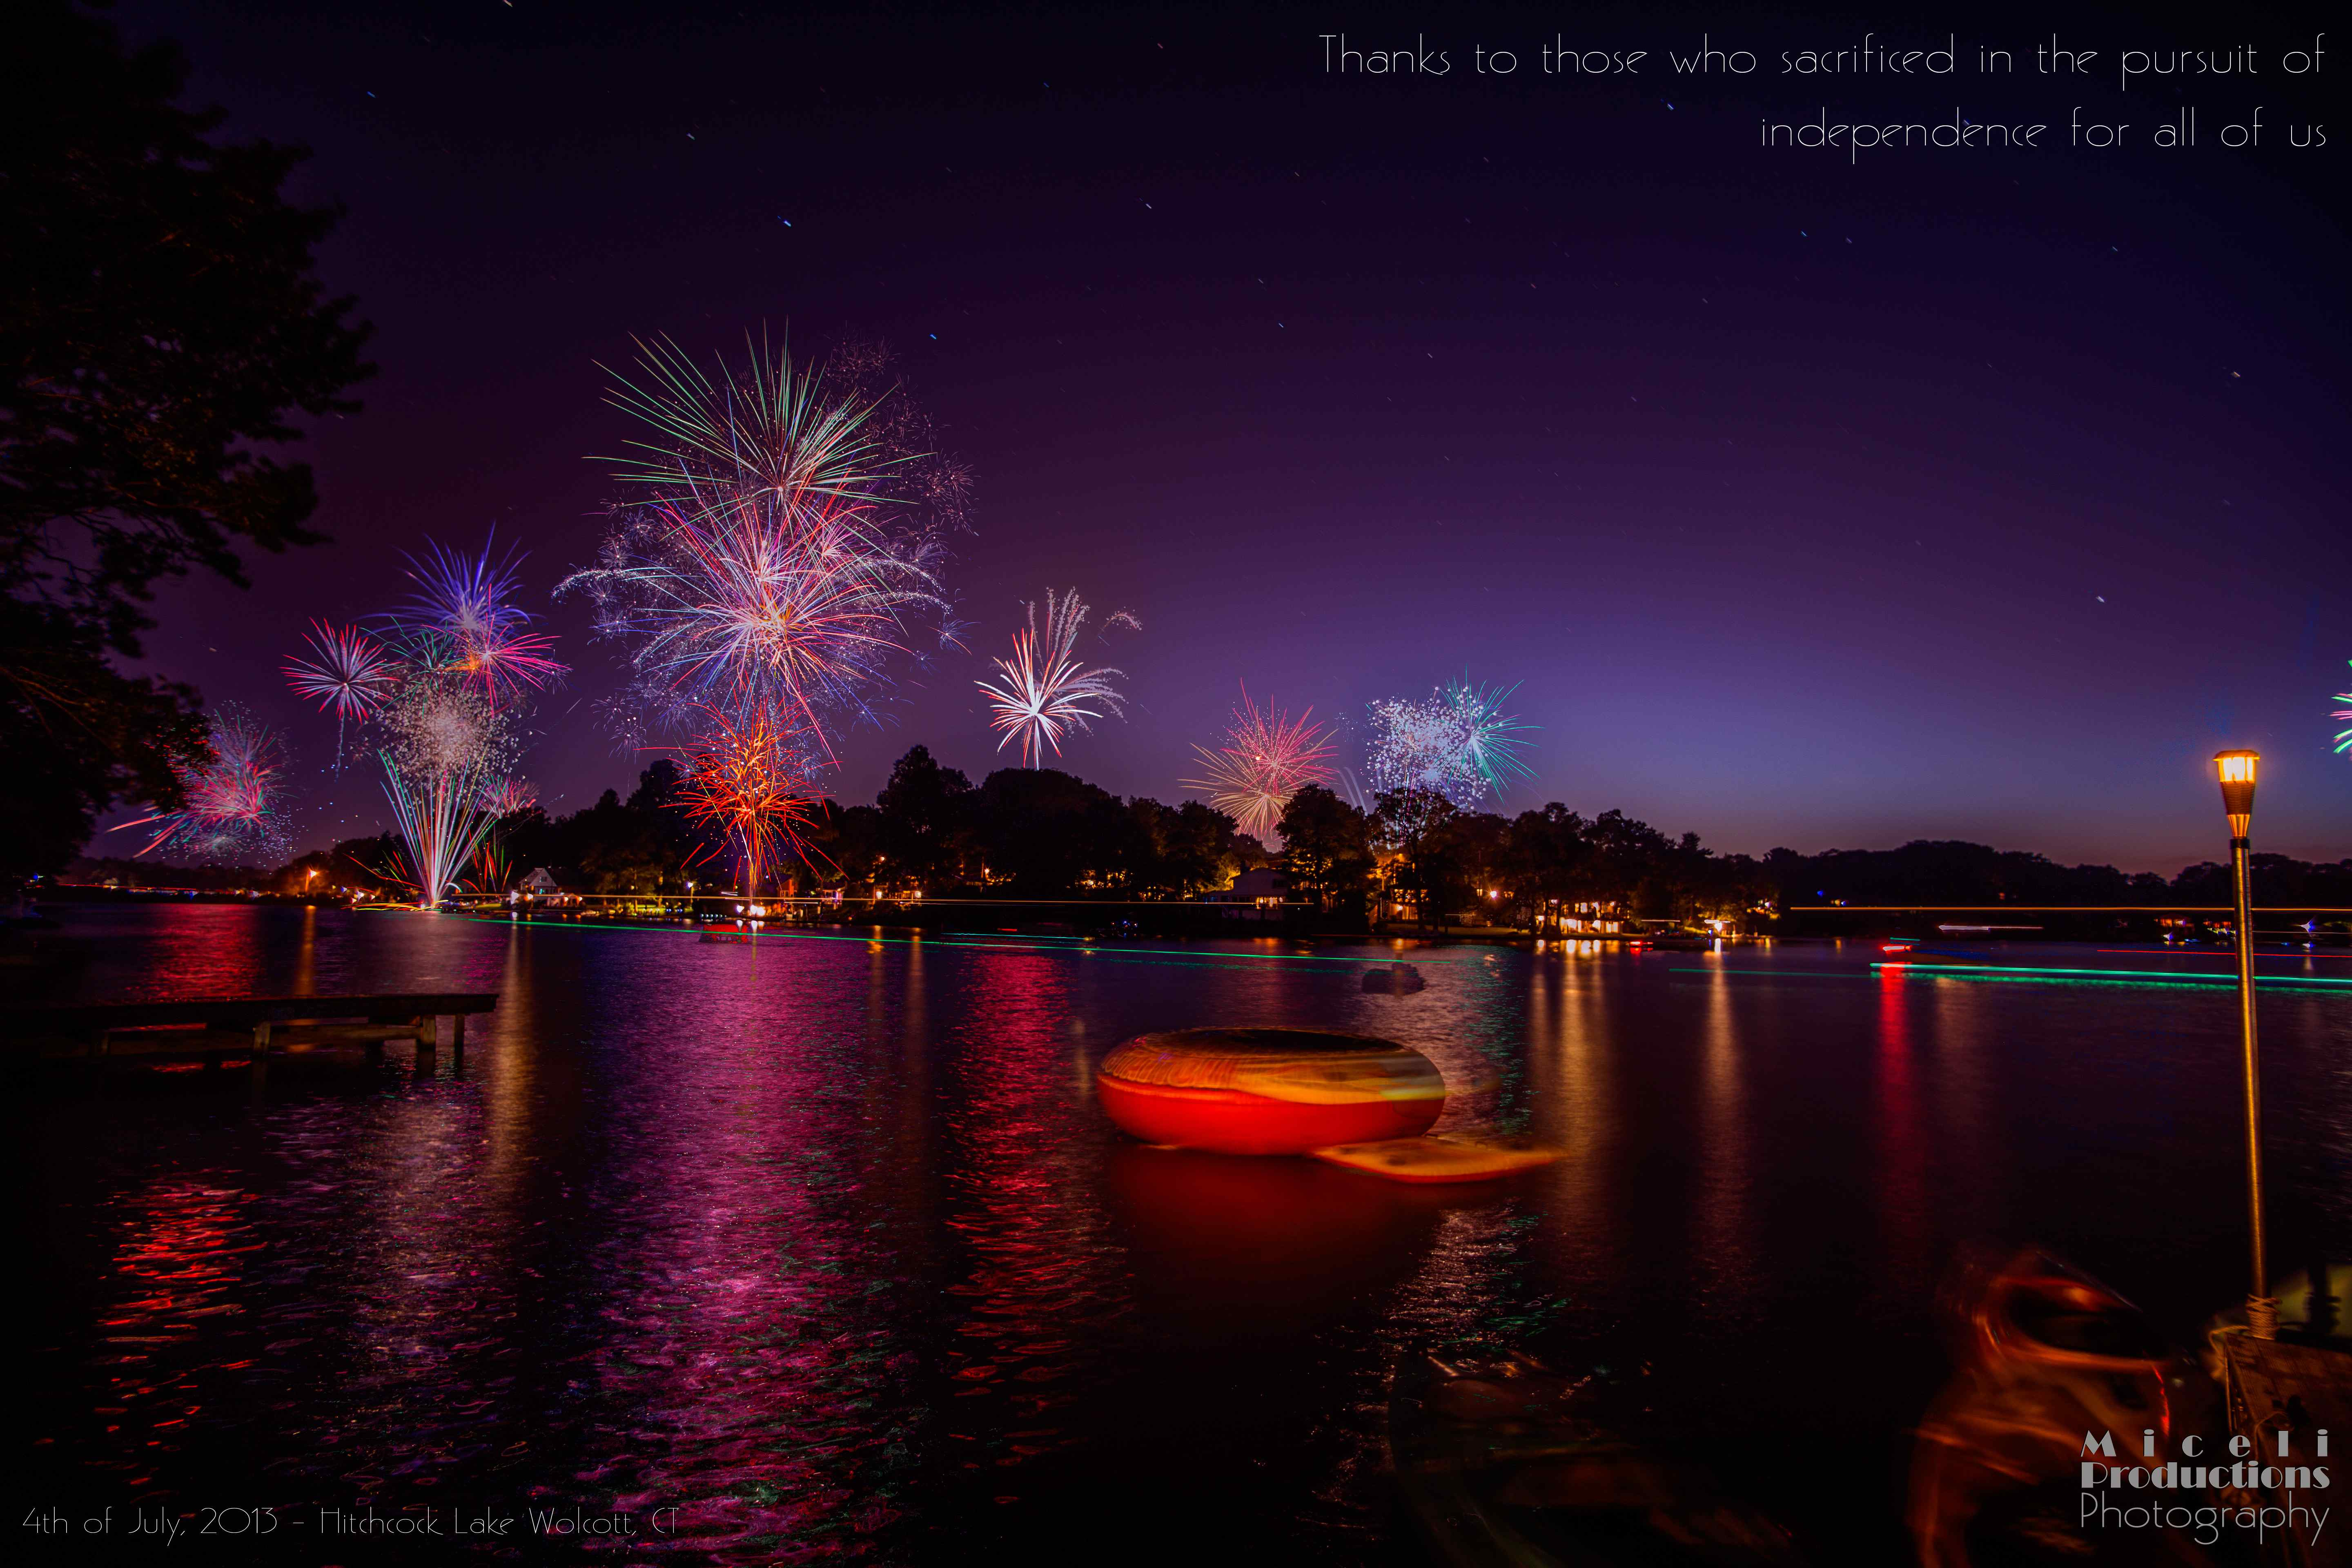 Fouth of July, Miceli Productions Photography, fireworks, nightime fireworks, lake.  © Miceli Productions Photography